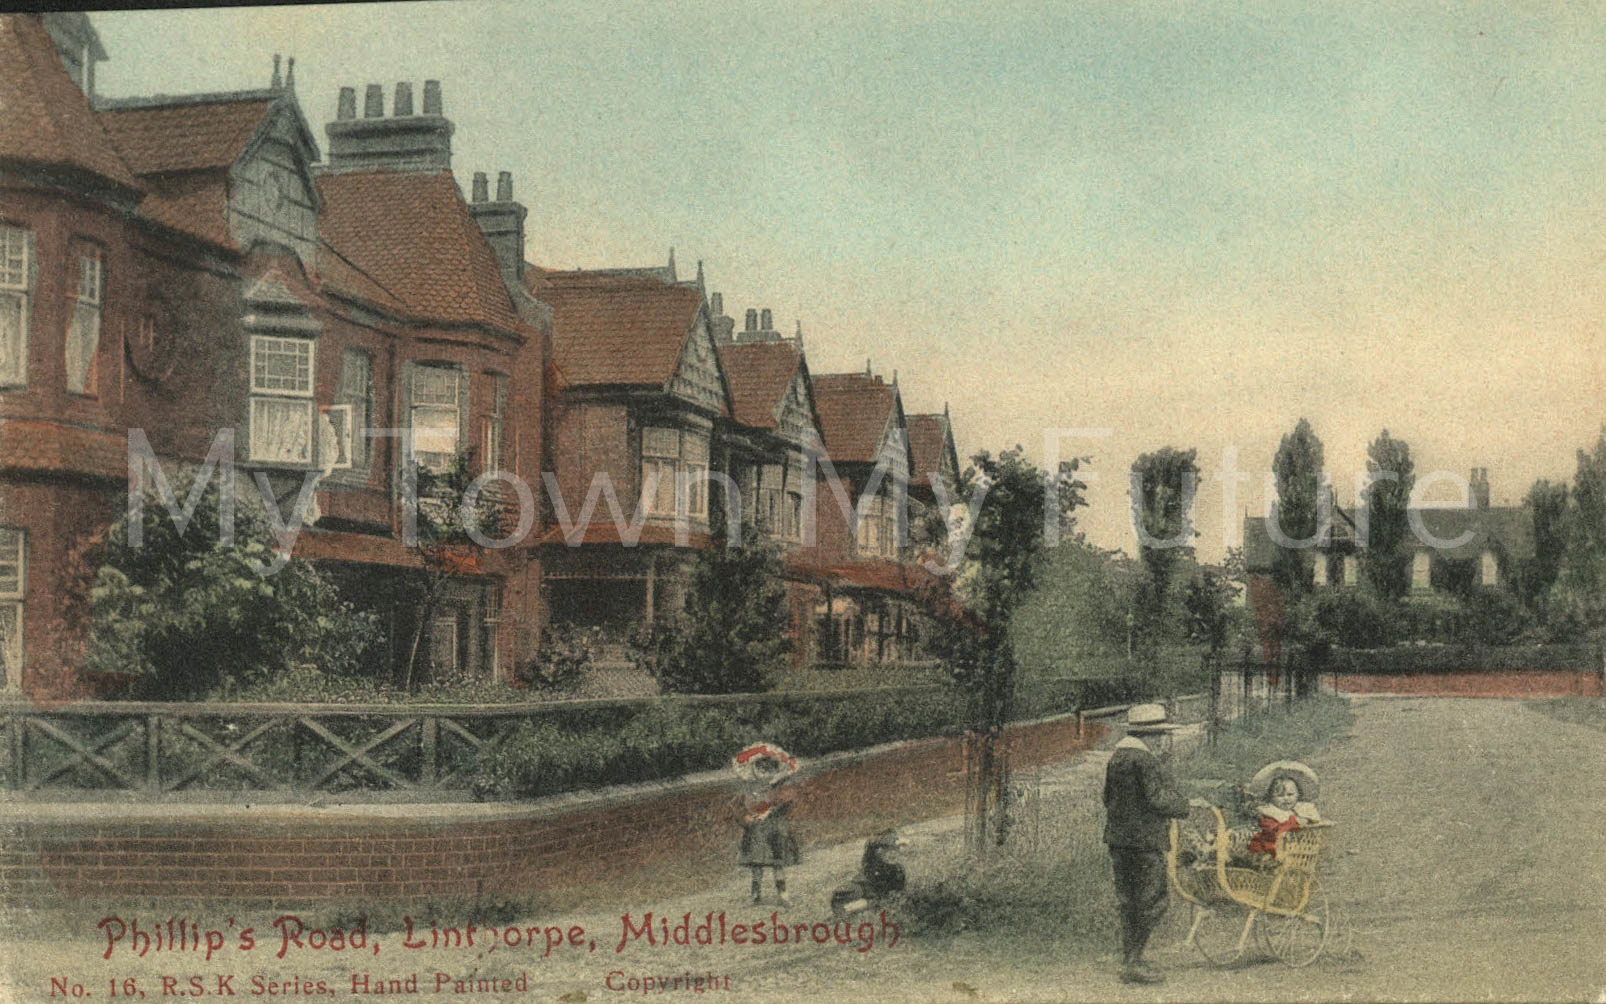 Postcard style image of Phillip's Road, Linthorpe, Middlesbrough